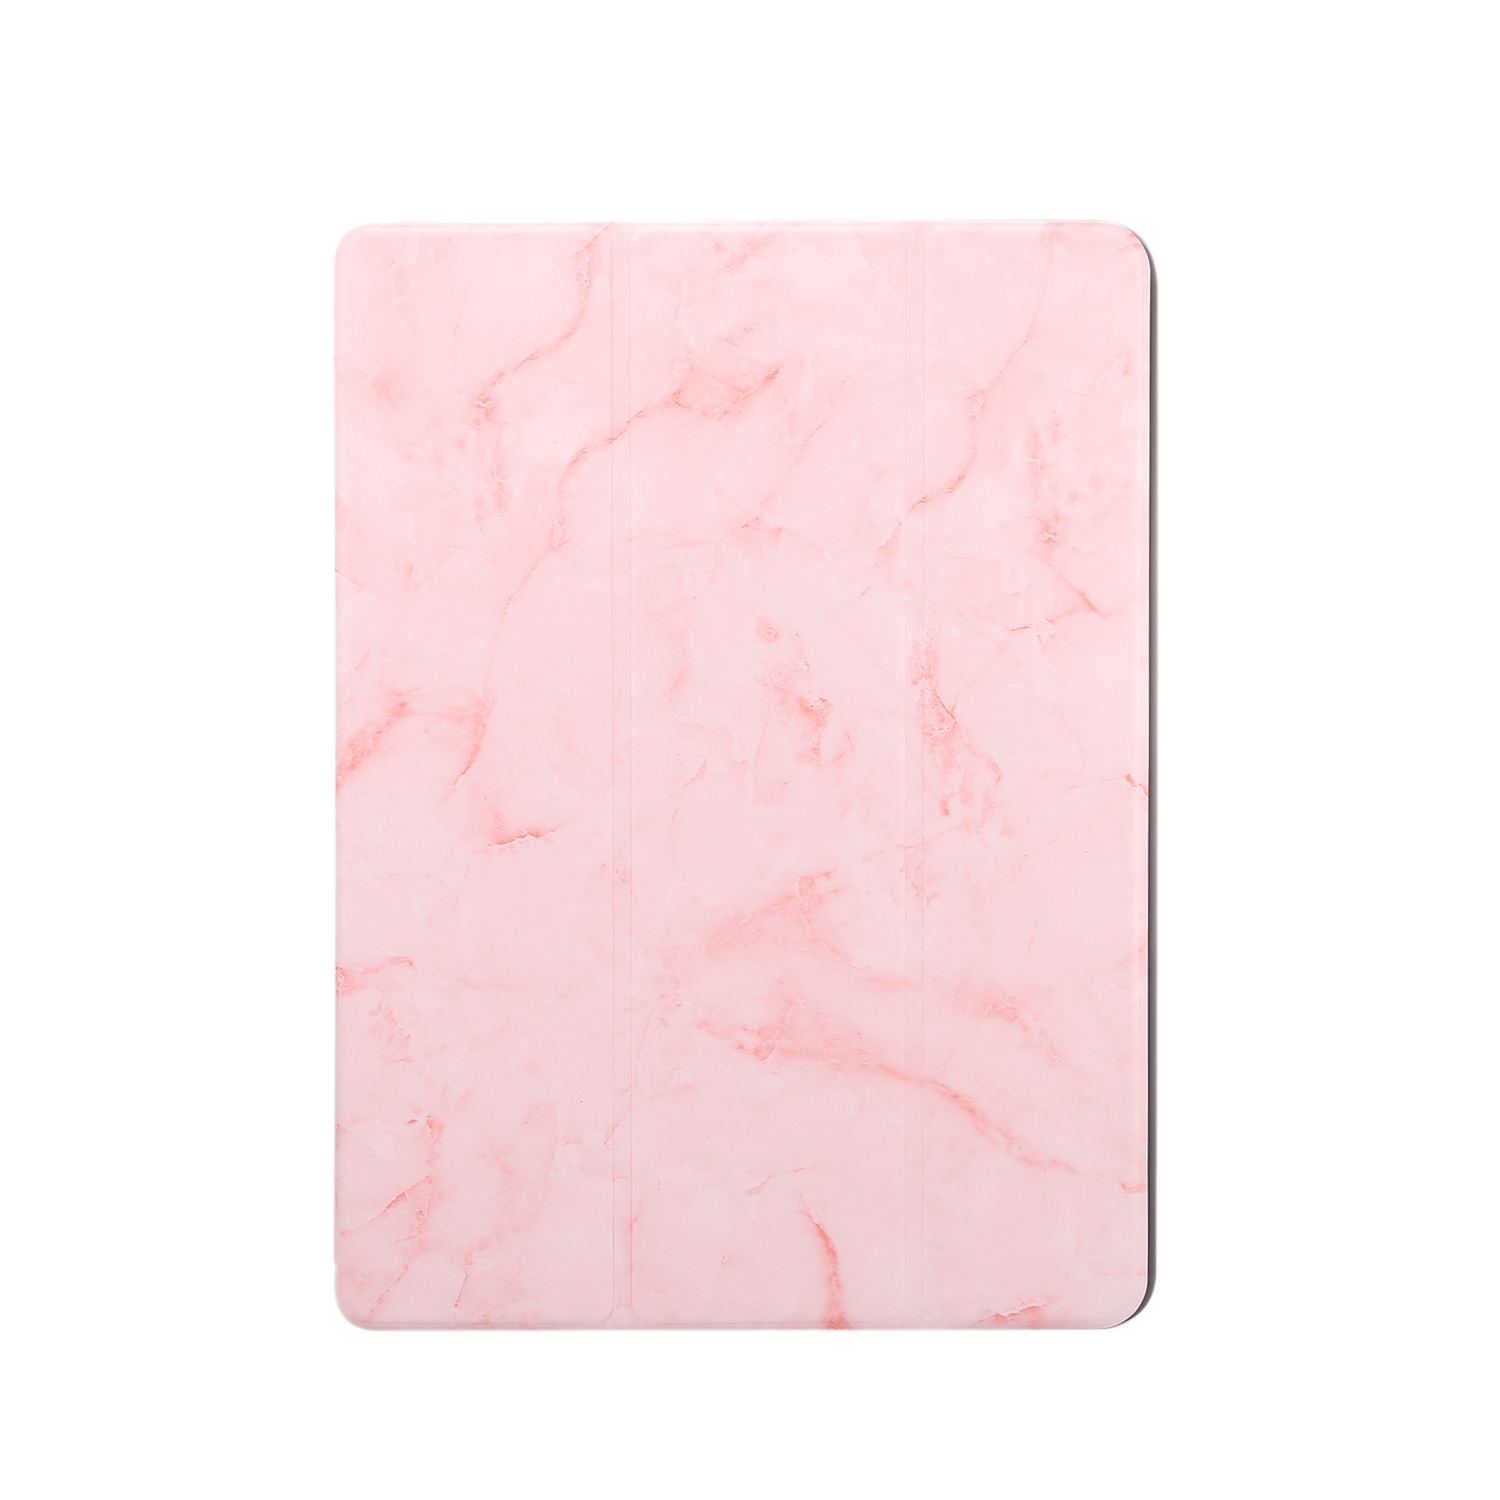 For iPad Pro 10.2 2019 Tablet Cover Marbling Pattern PU Leather Pen Loops Anti-fall Anti-scrach Anti-slip Protect Shell Tri-fold Tablet Case pink